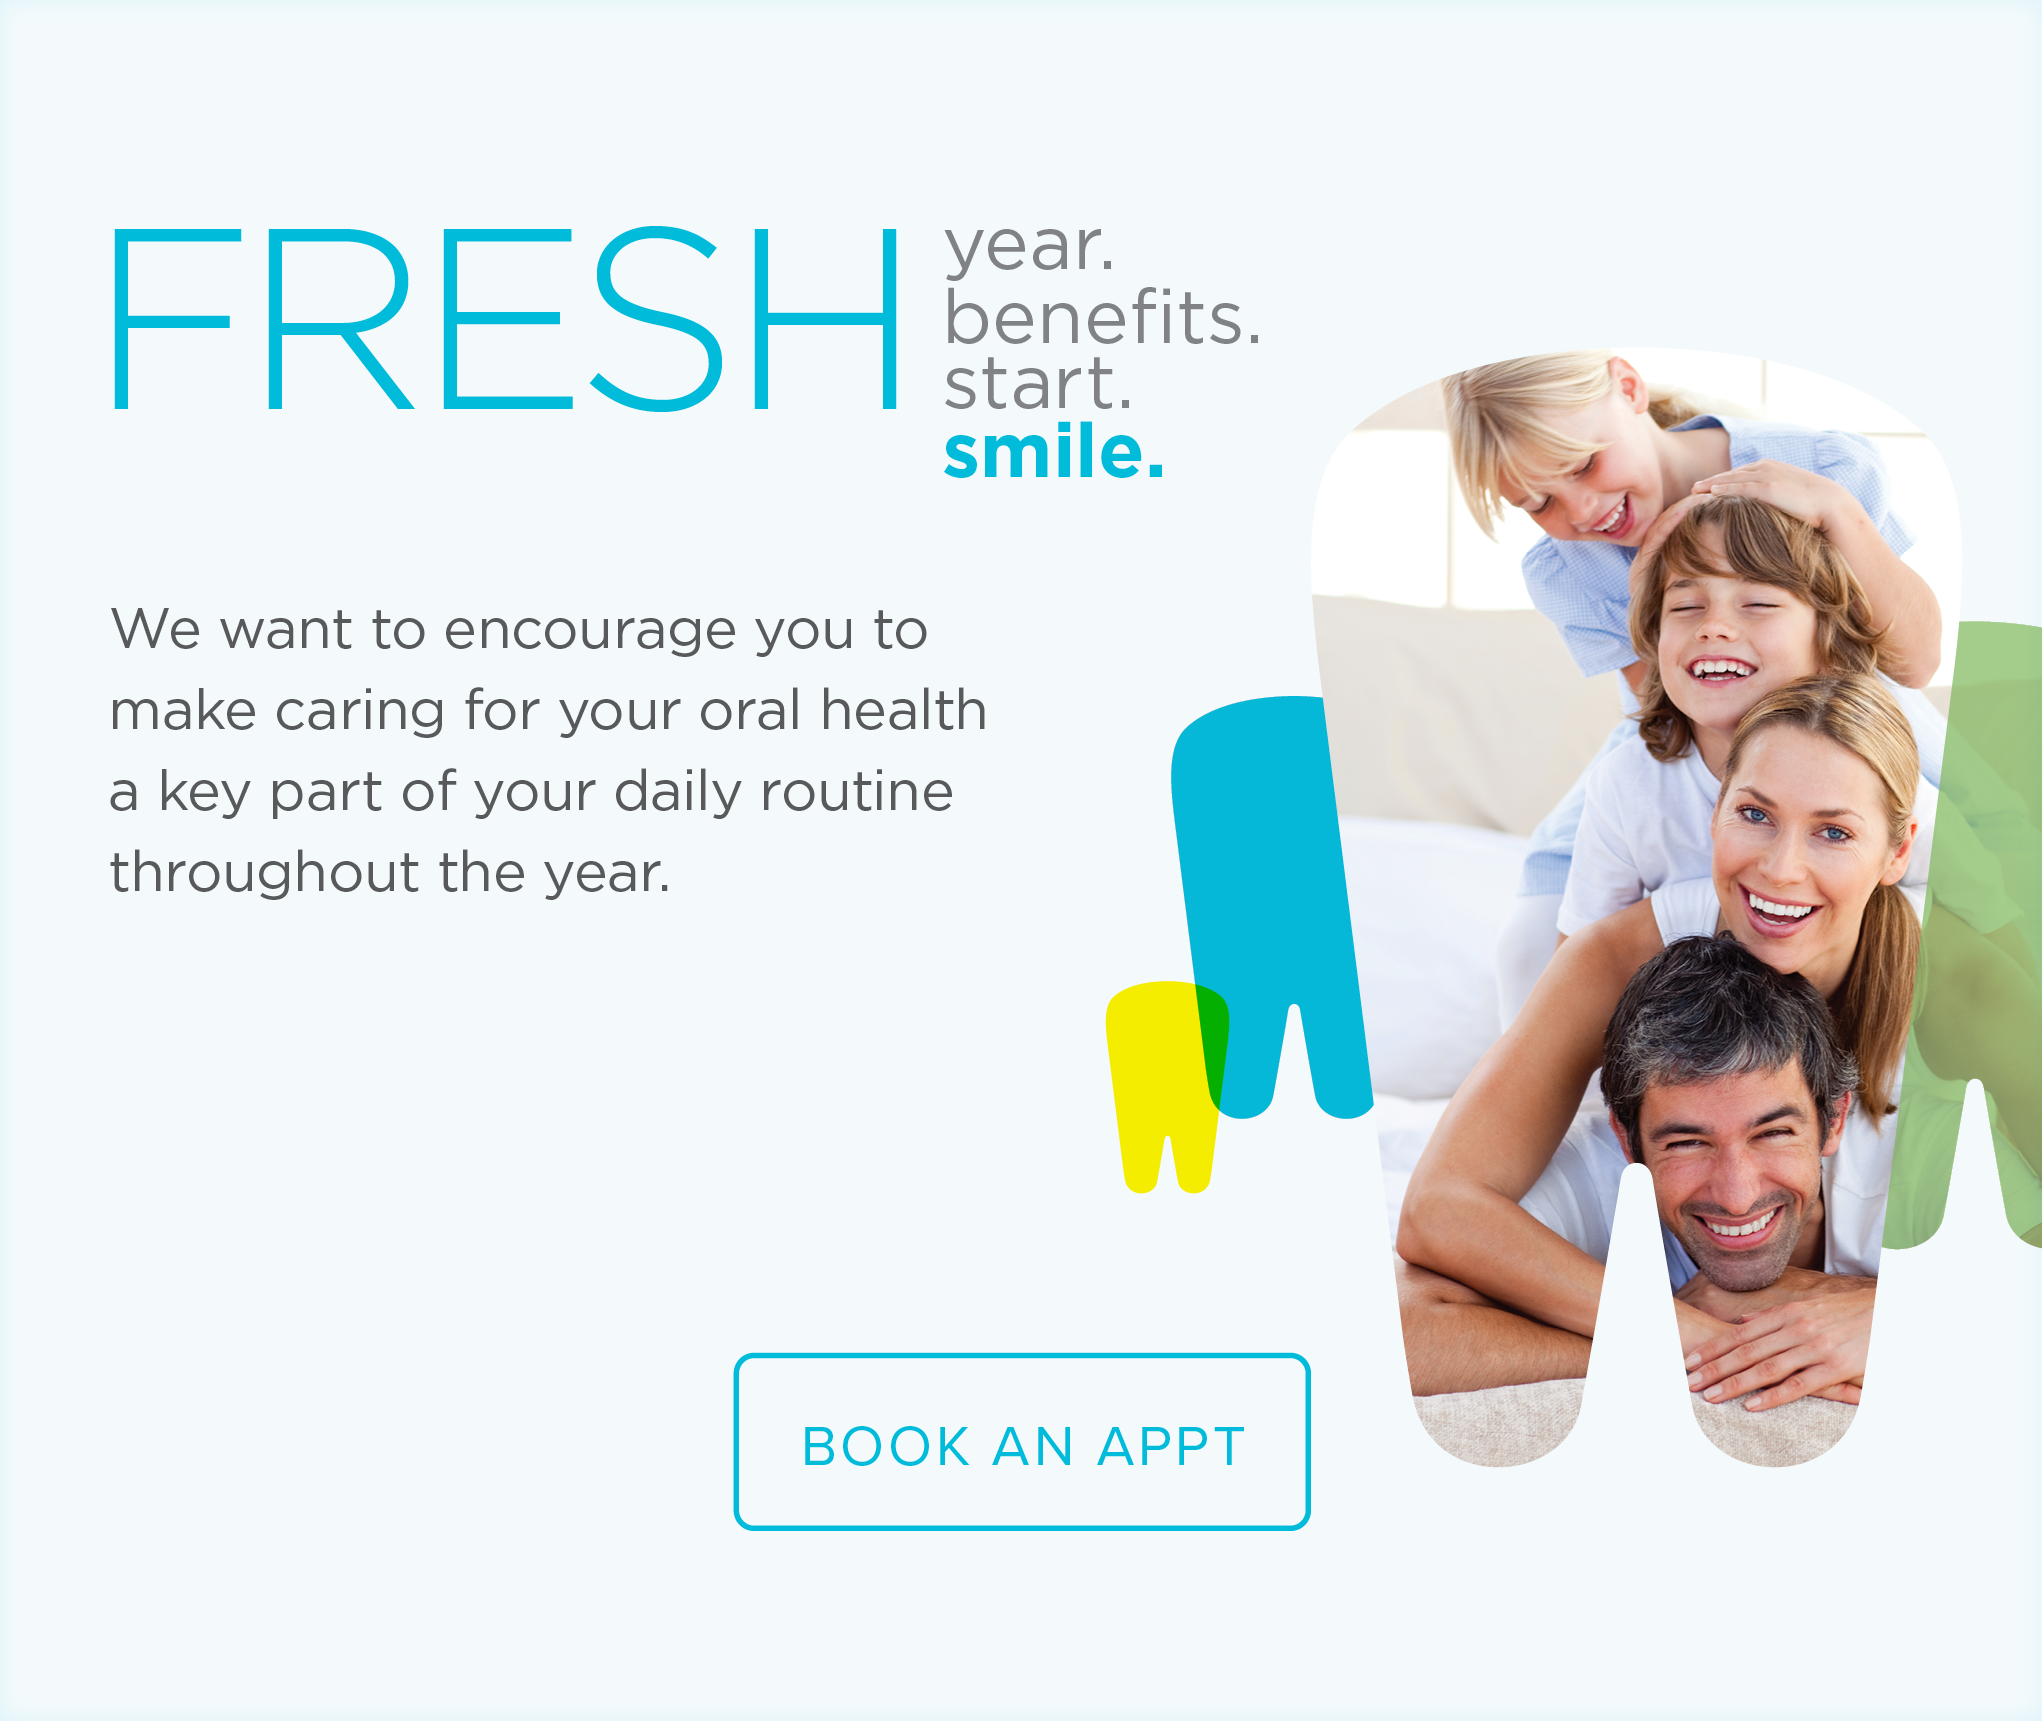 Gallatin Smiles Dentistry - Make the Most of Your Benefits